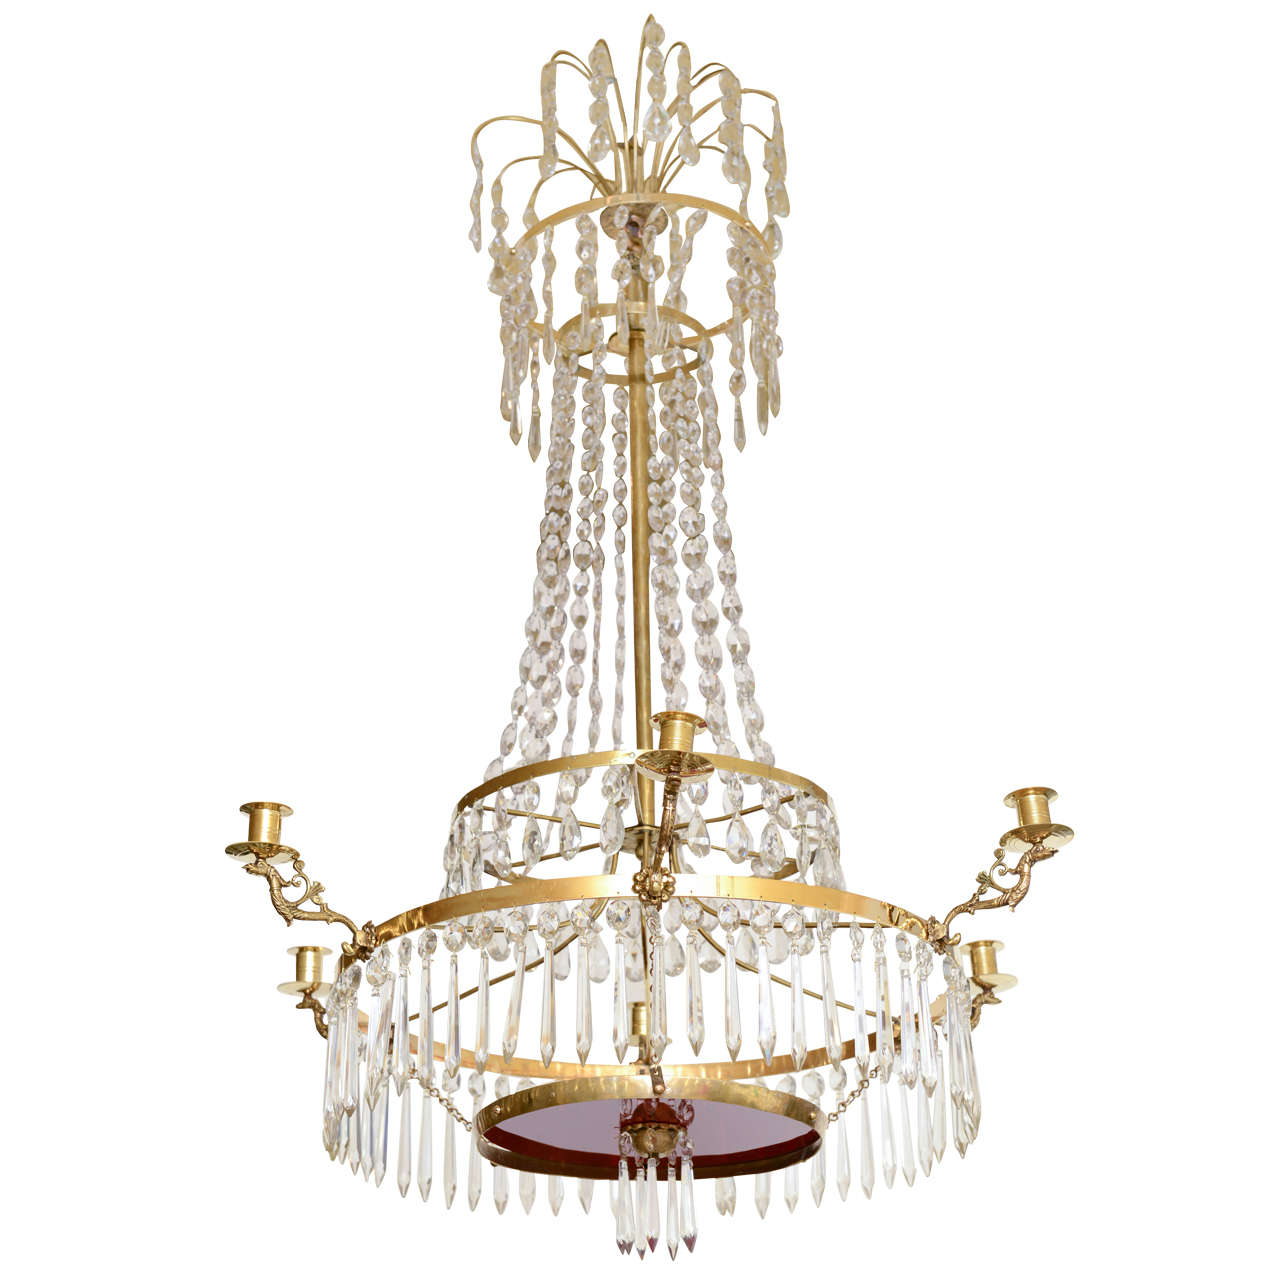 19th Century Antique Baltic Crystal Chandelier For Sale At